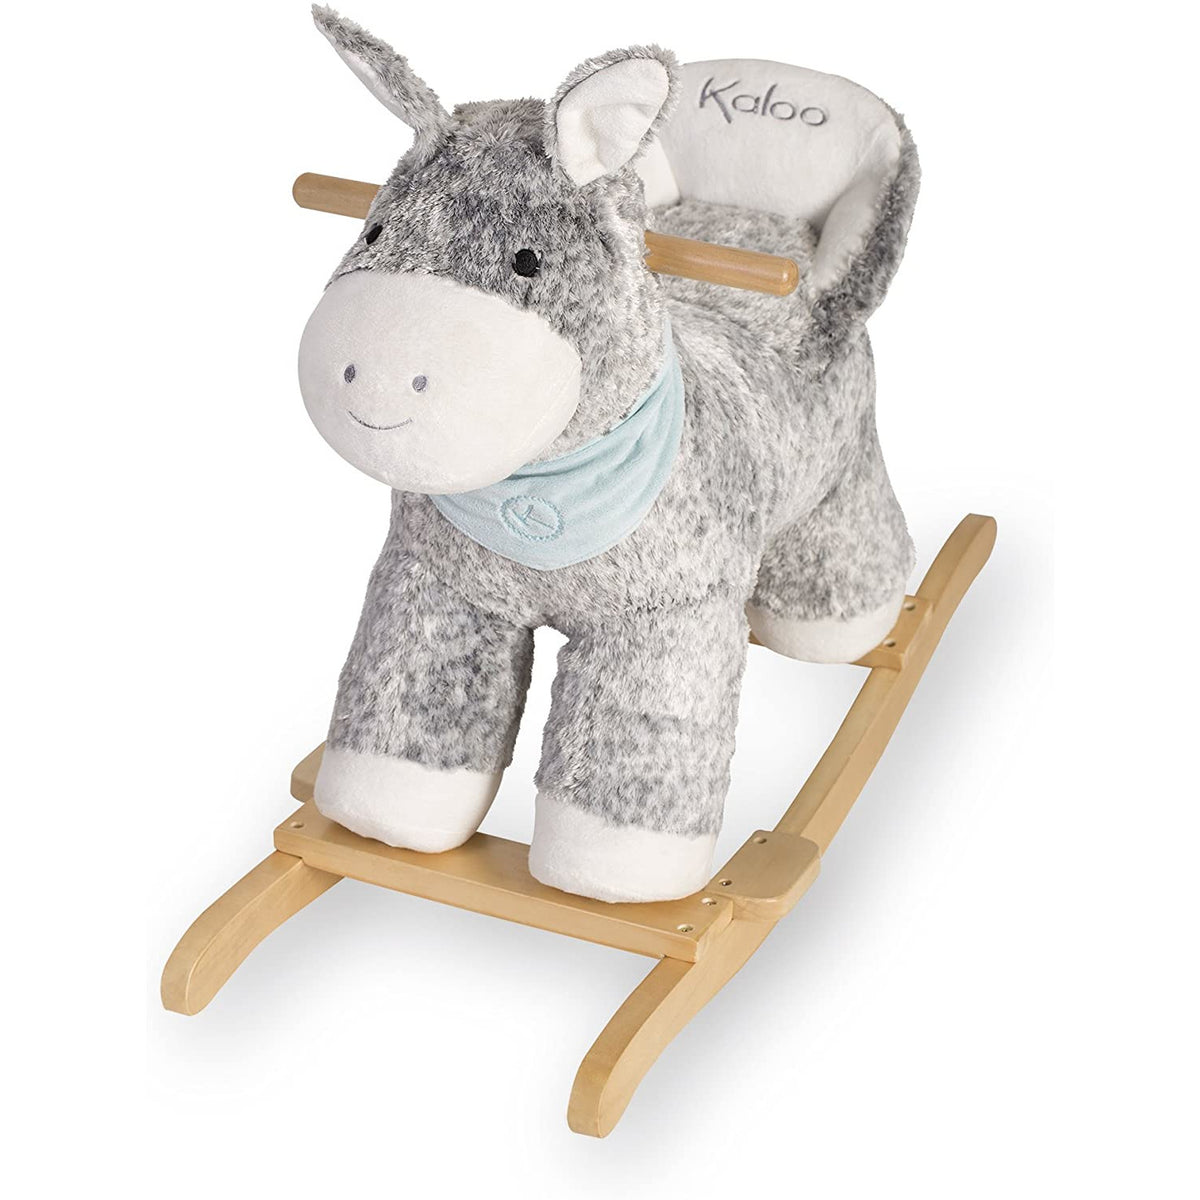 Les Amis Rocking Donkey kaloo ride on canada ontario baby infant